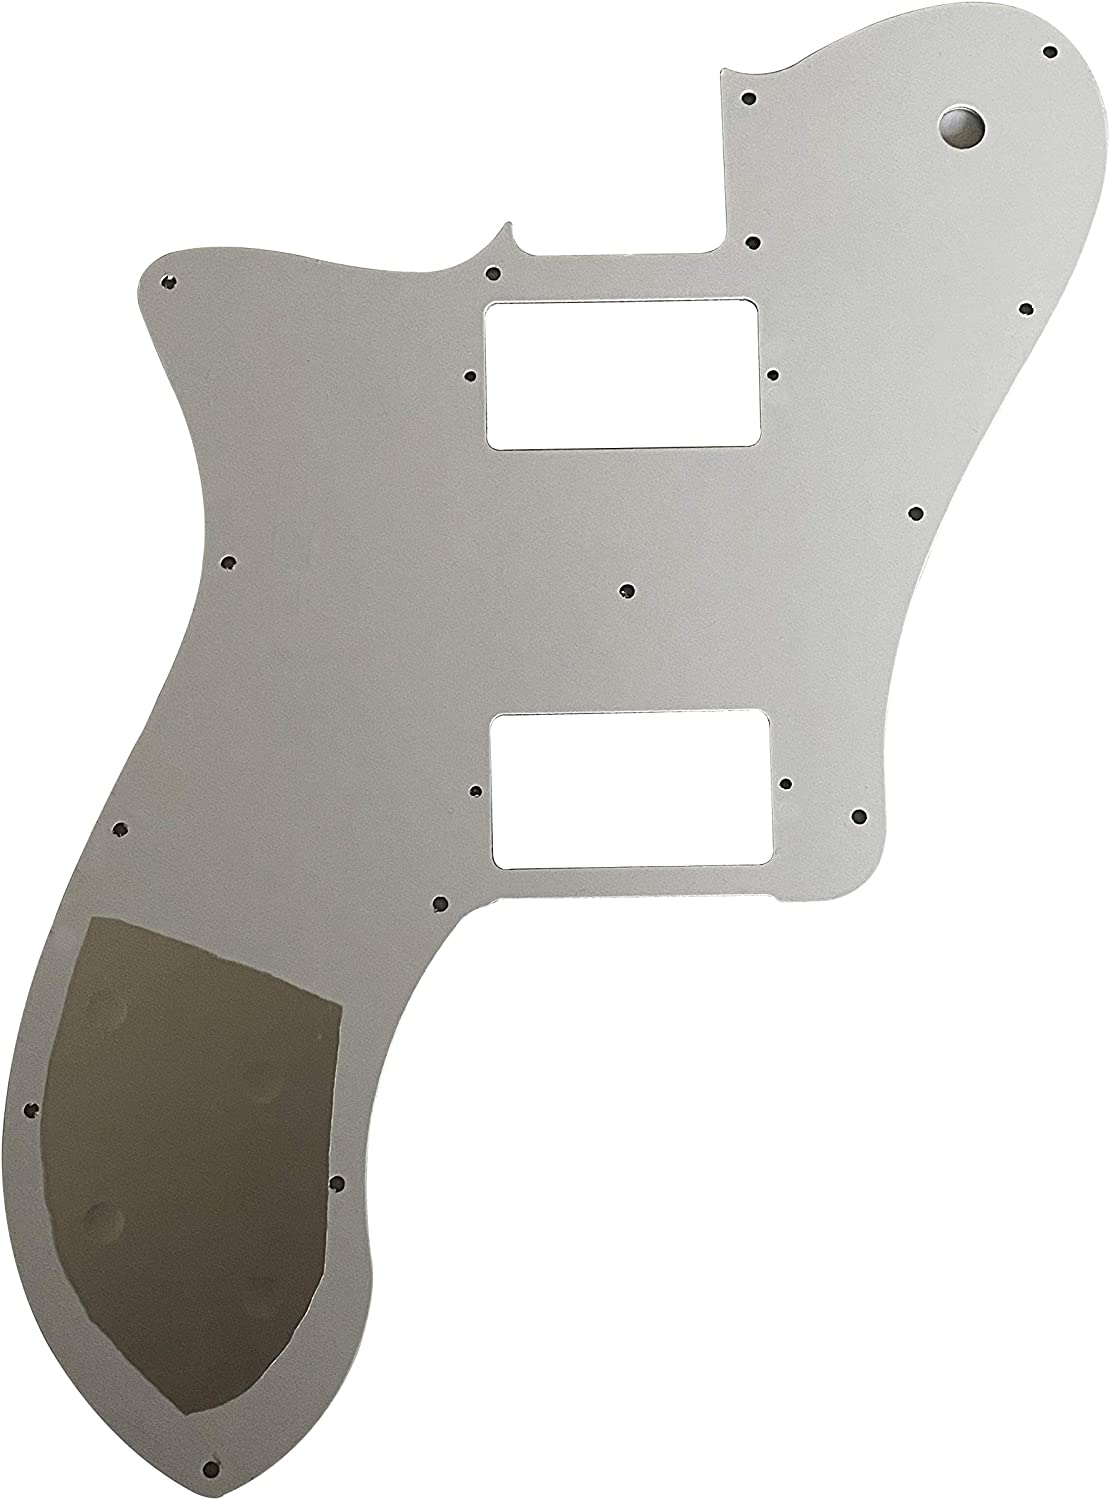 3 Ply Black For Fender Professional Tele Deluxe Humbucker Style Guitar Pickguard Scratch Plate